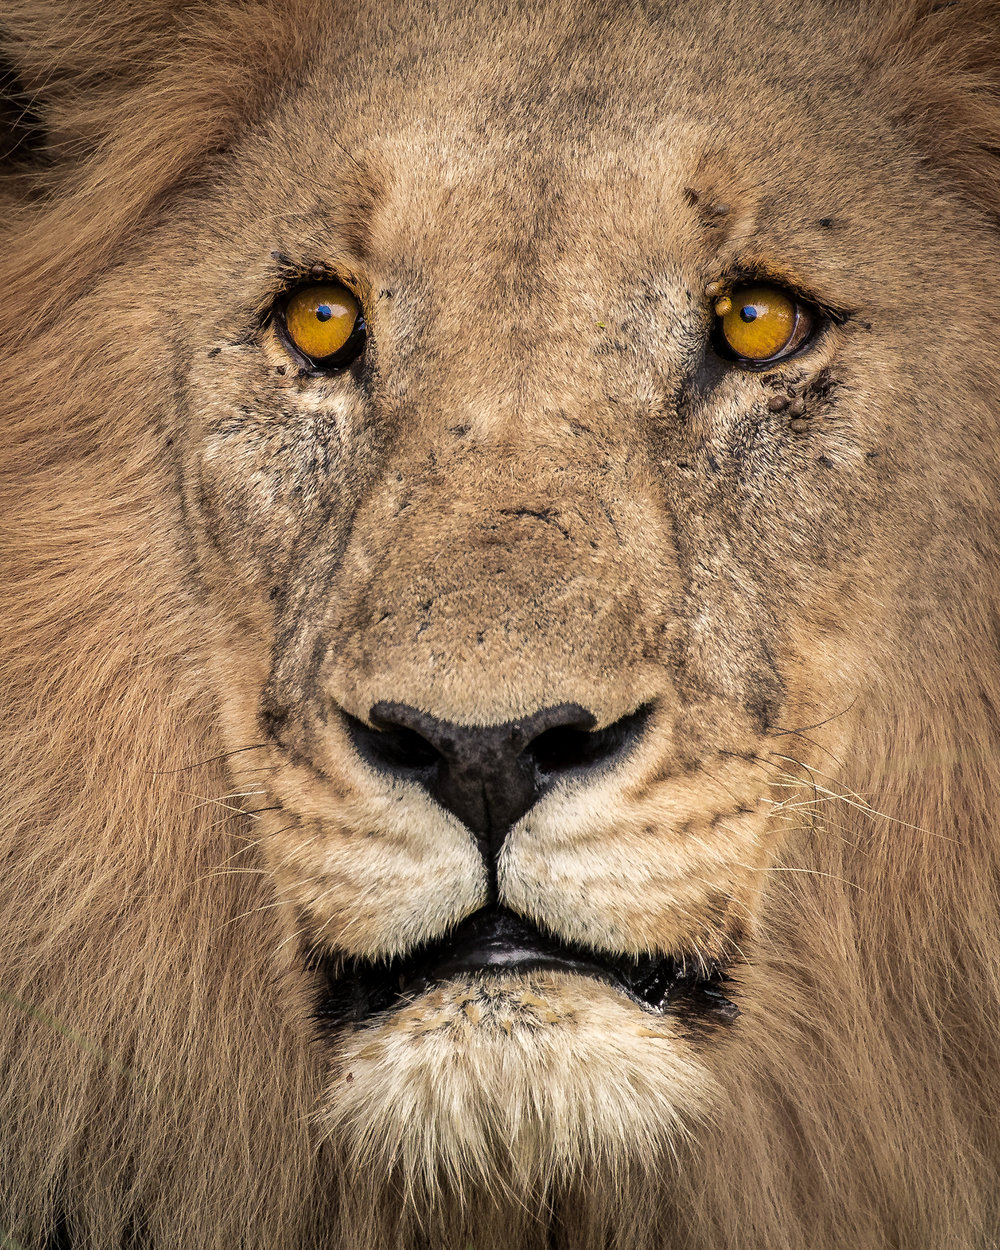 lion_tight_portrait_2048.jpg